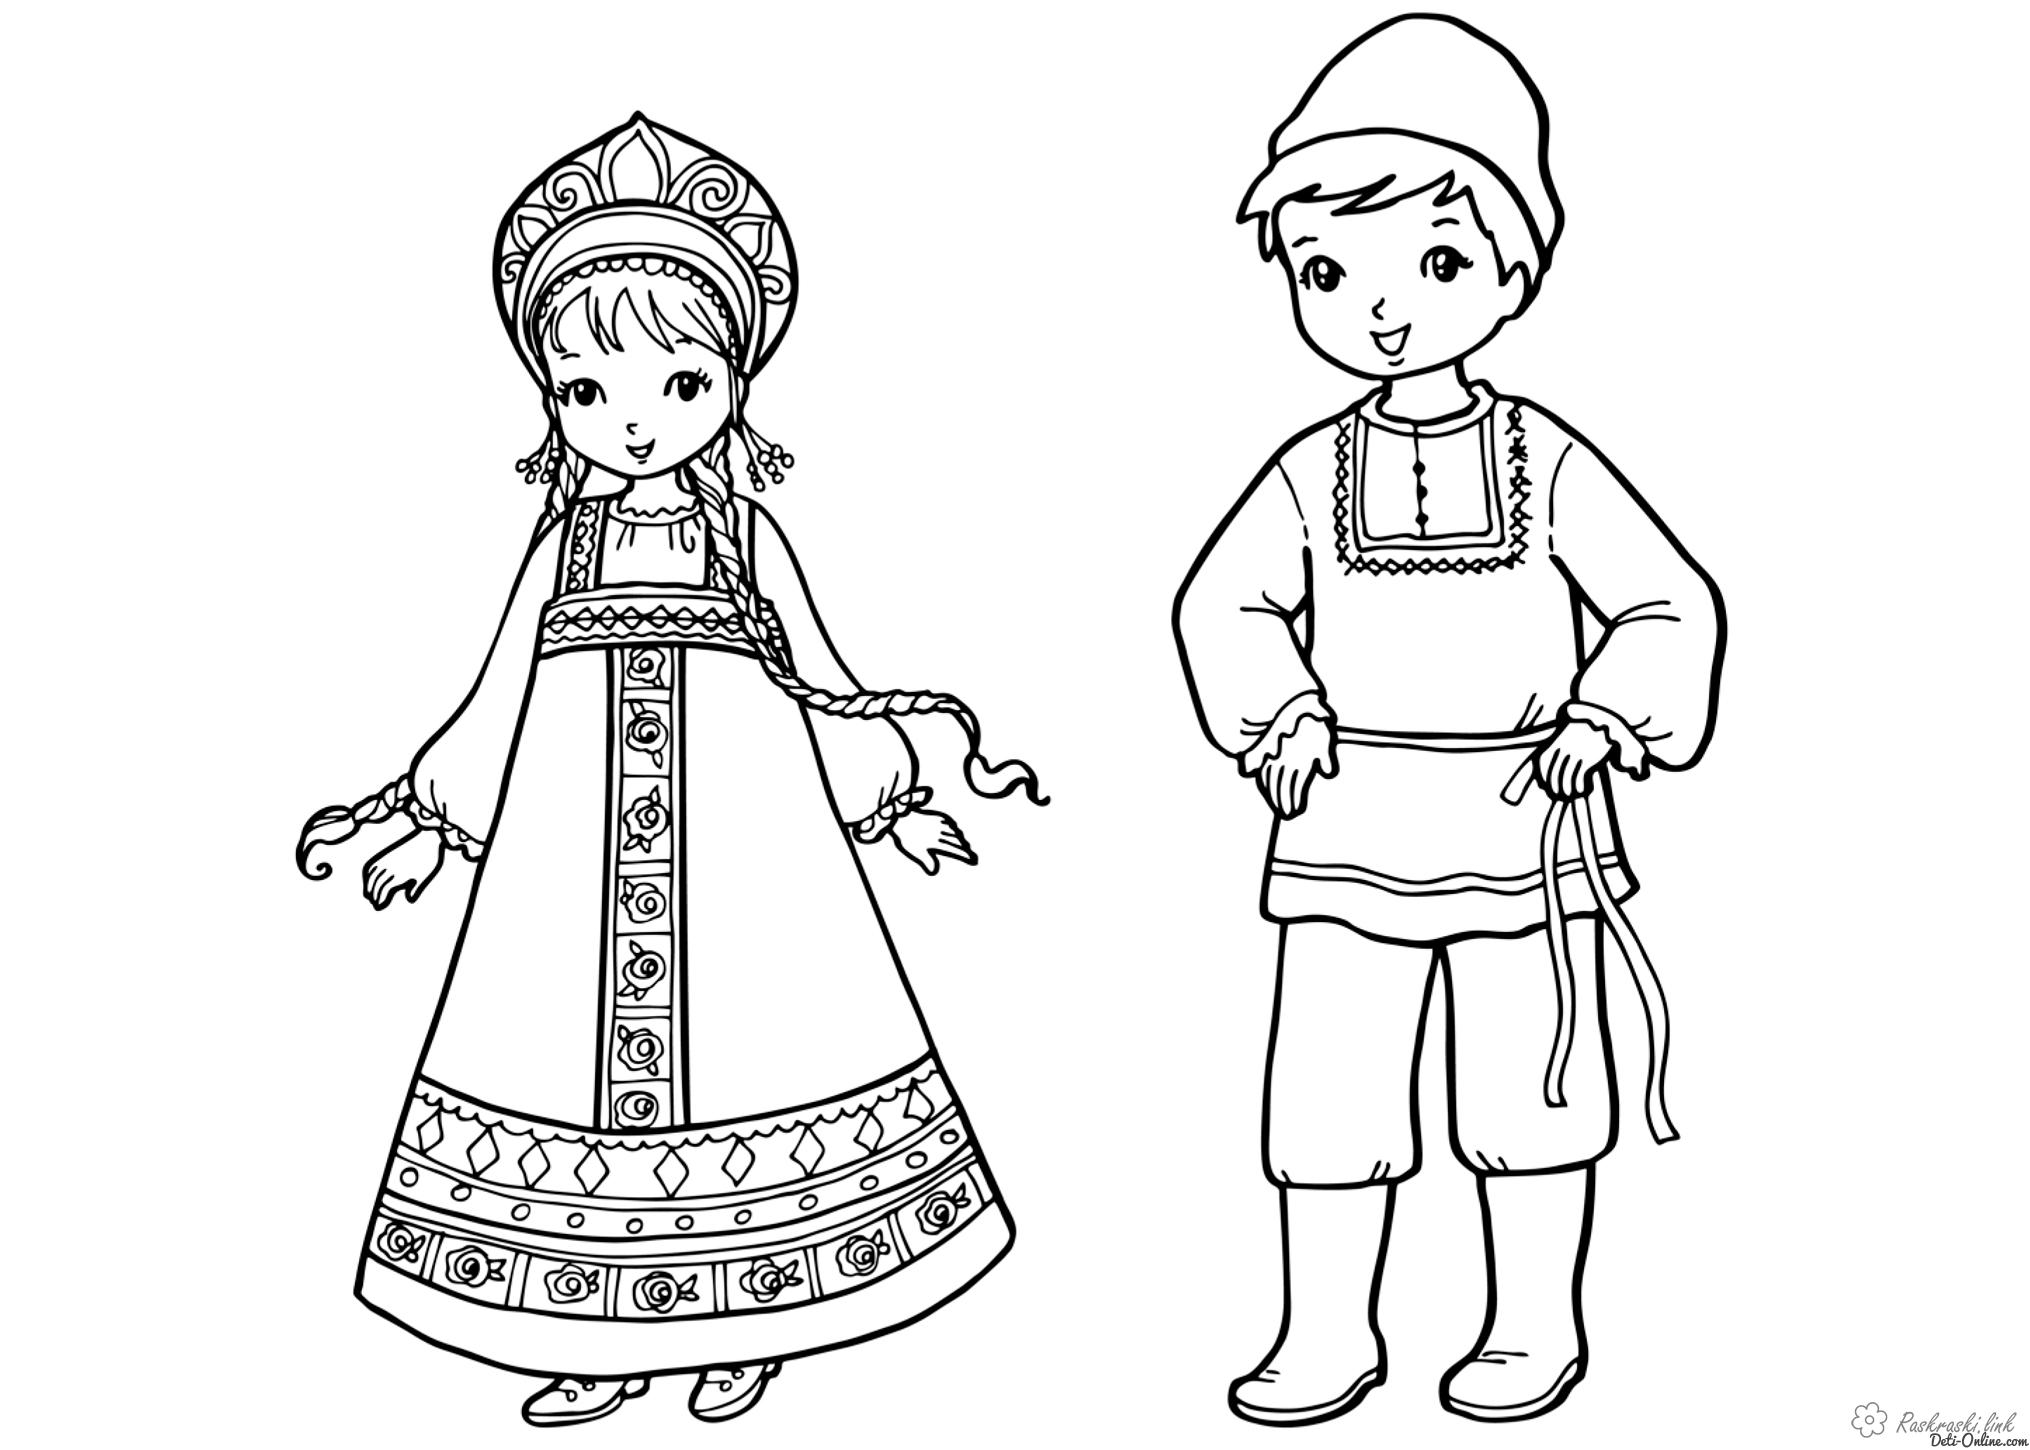 Coloring National costumes peoples of Russia Children in national costumes coloring pages